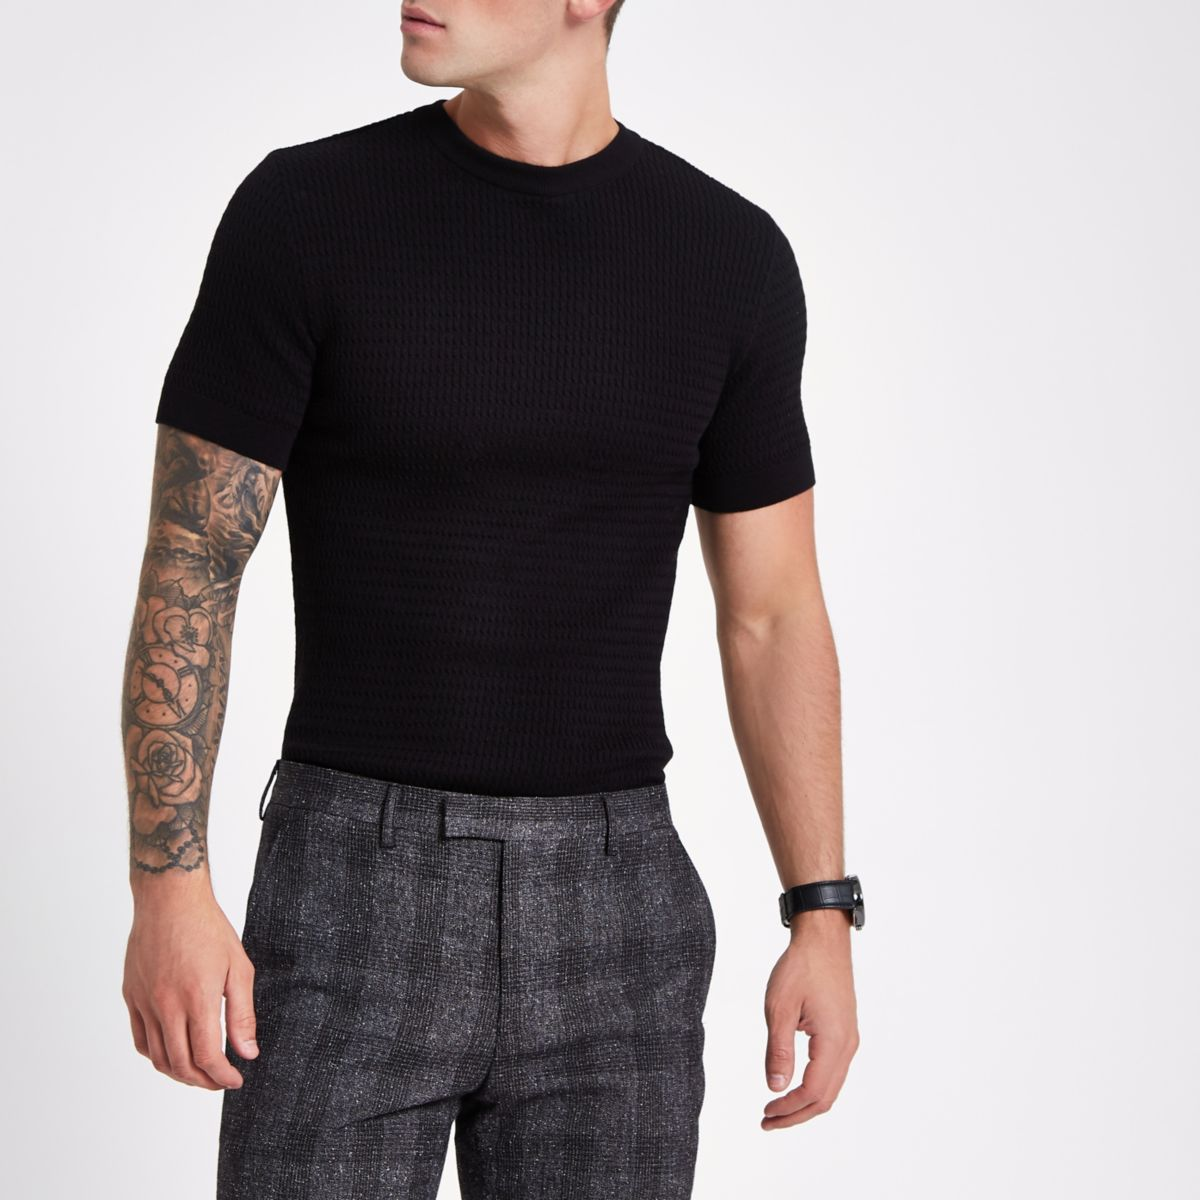 Black cable knit muscle short sleeve T-shirt